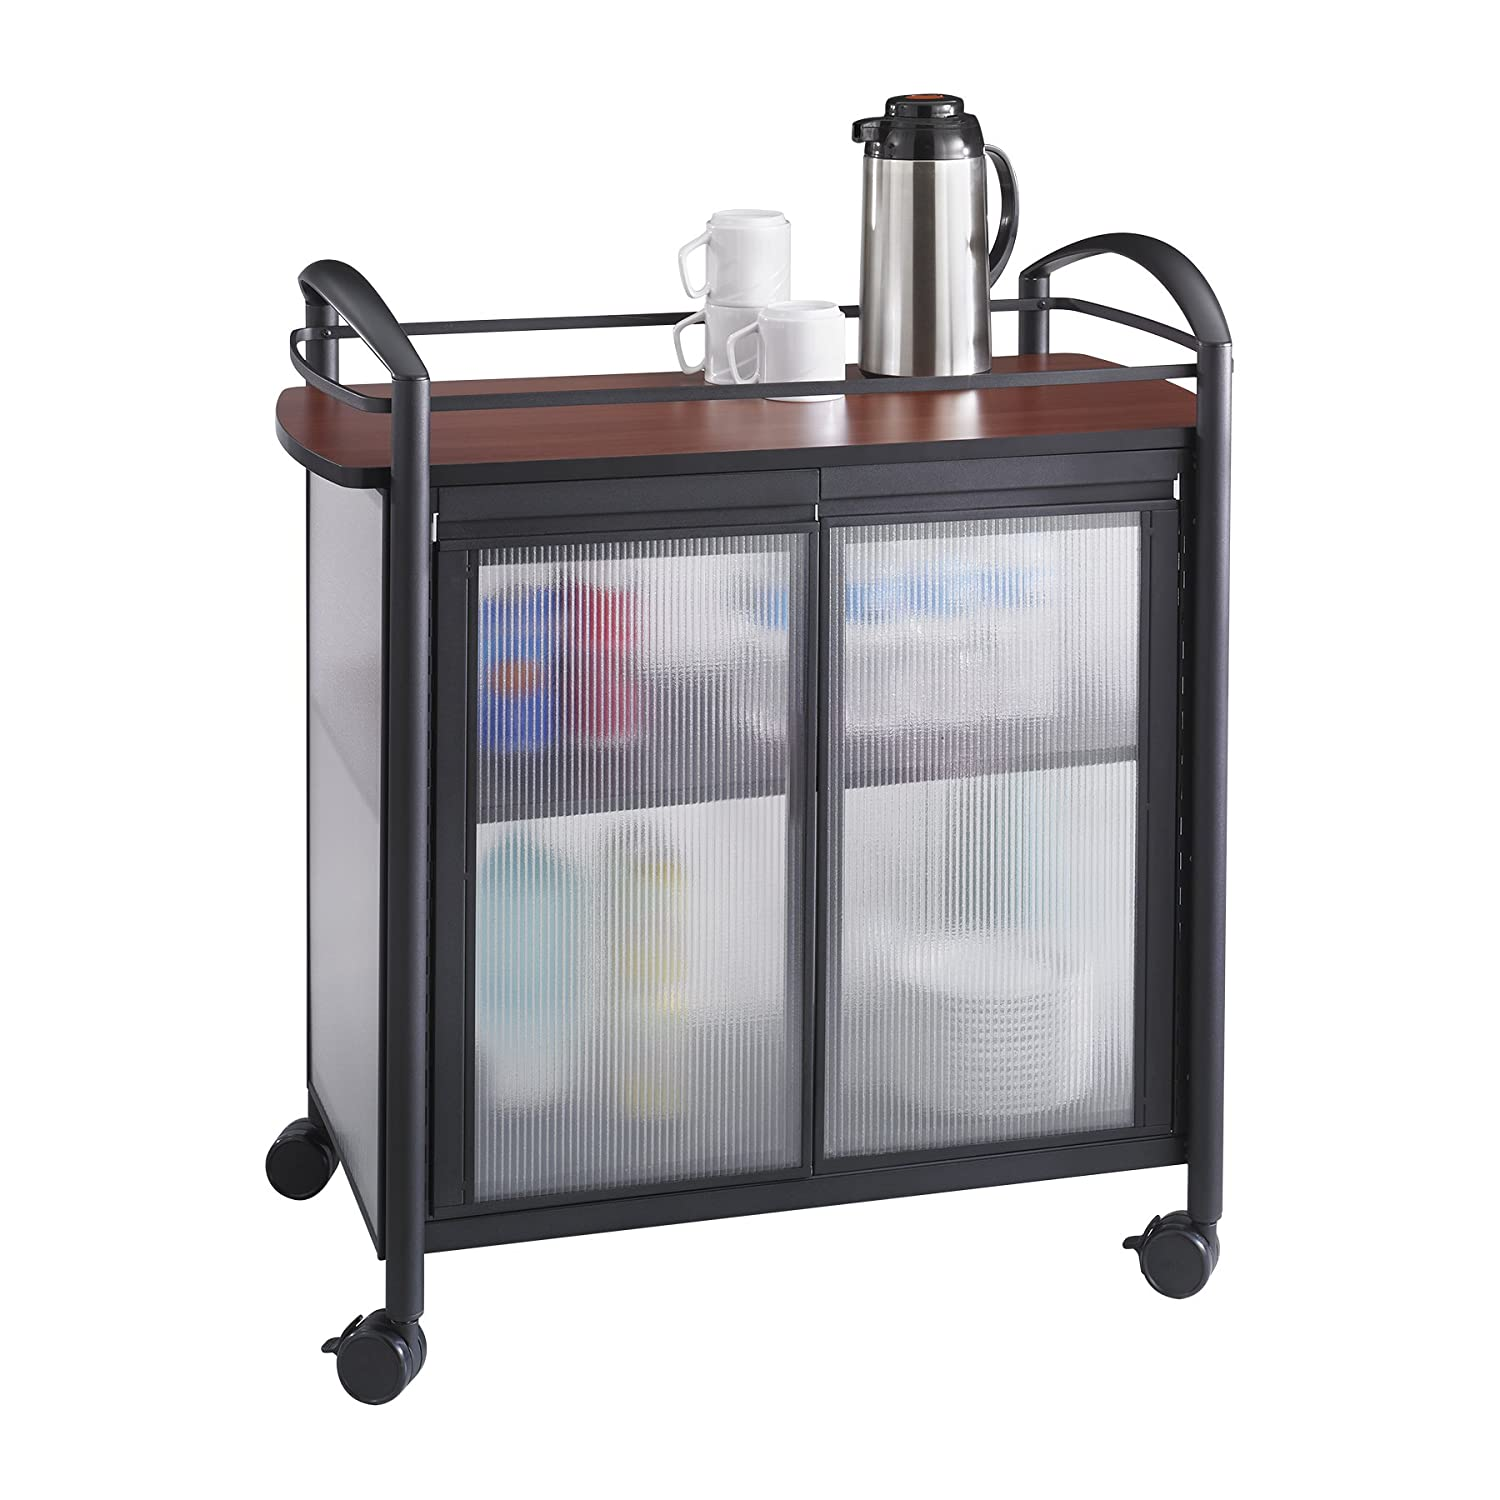 Safco Products Impromptu Refreshment Cart 8966BL, Cherry Top/Black Frame, 200 lbs. Capacity, Double Doors, Swivel Wheels